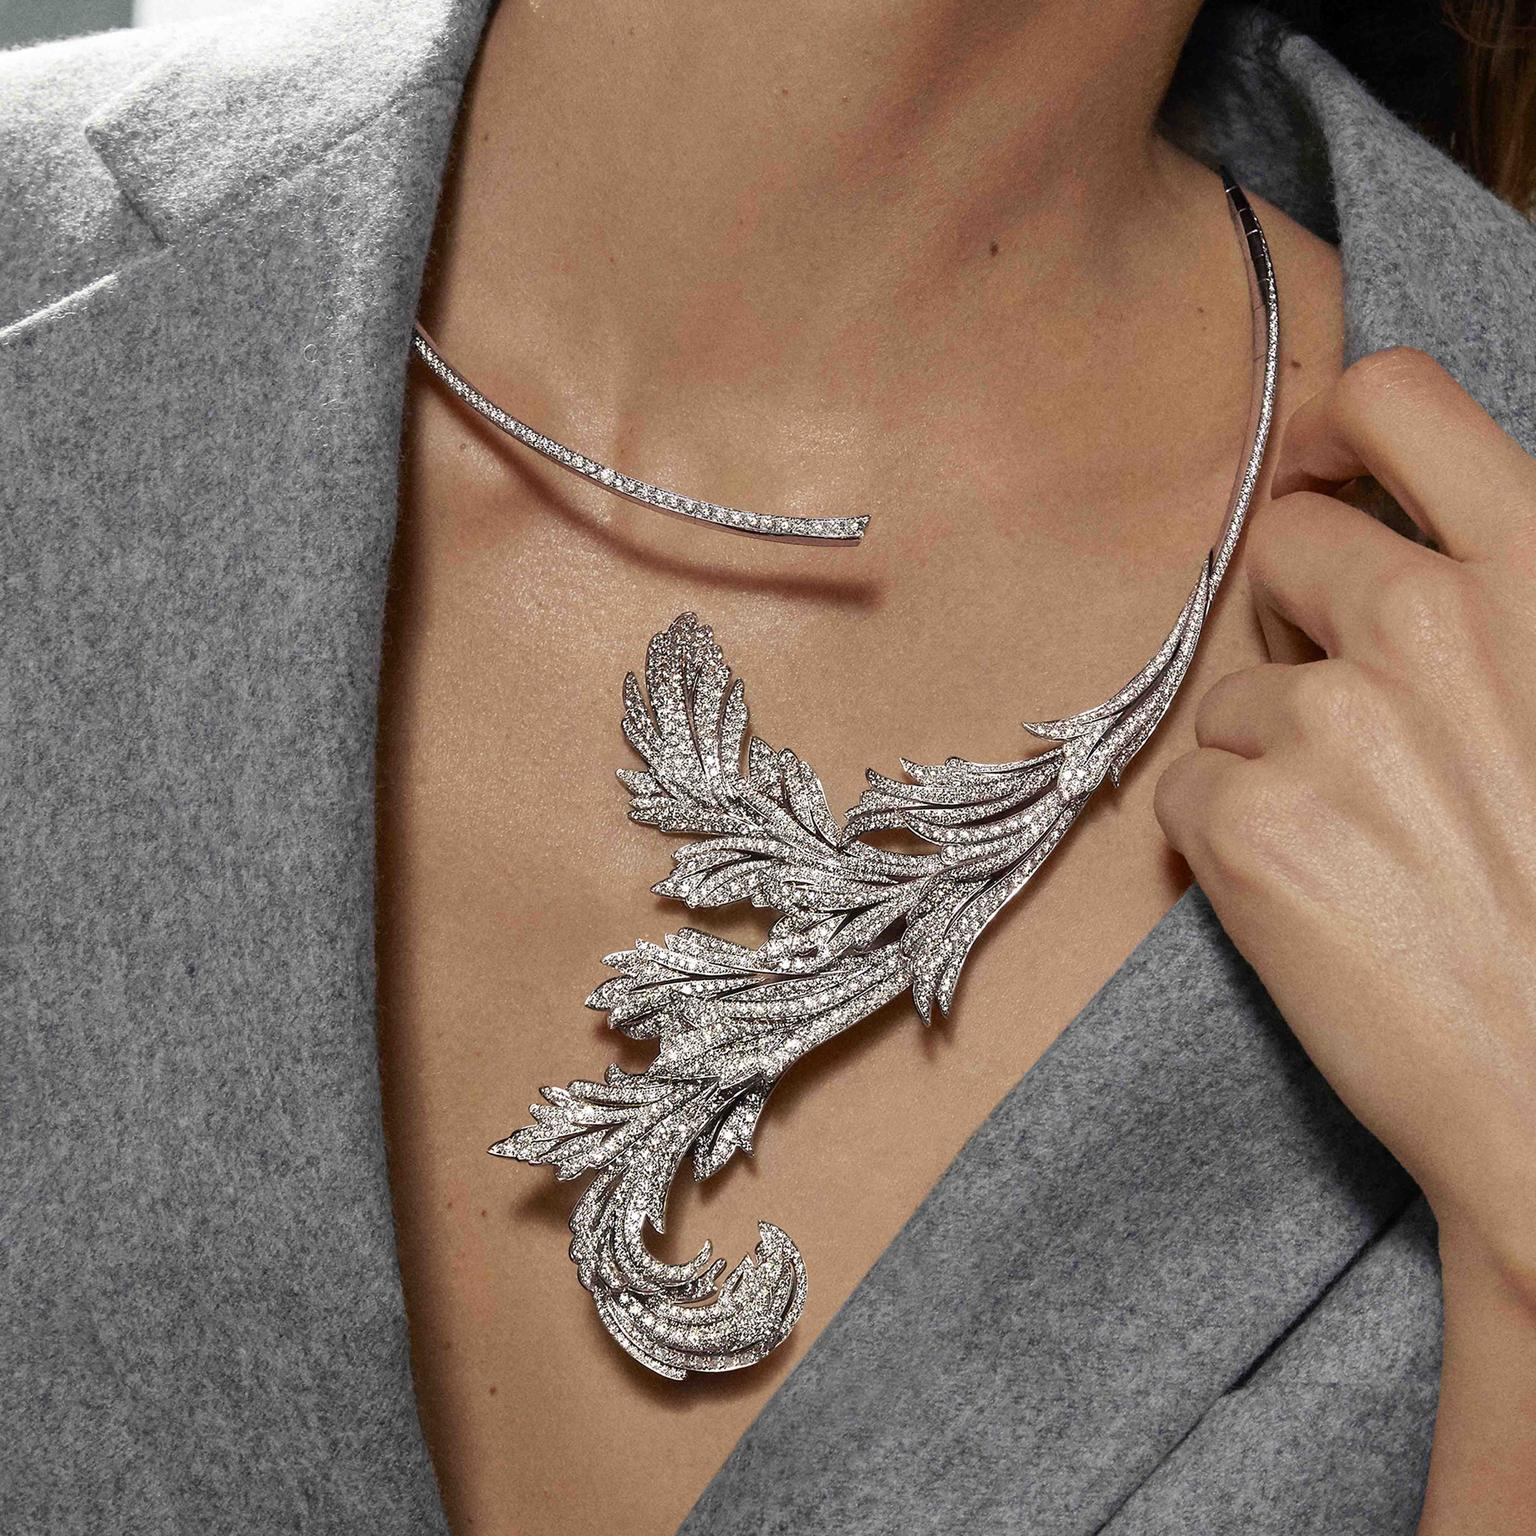 Boucheron high jewellery necklace collection 2019